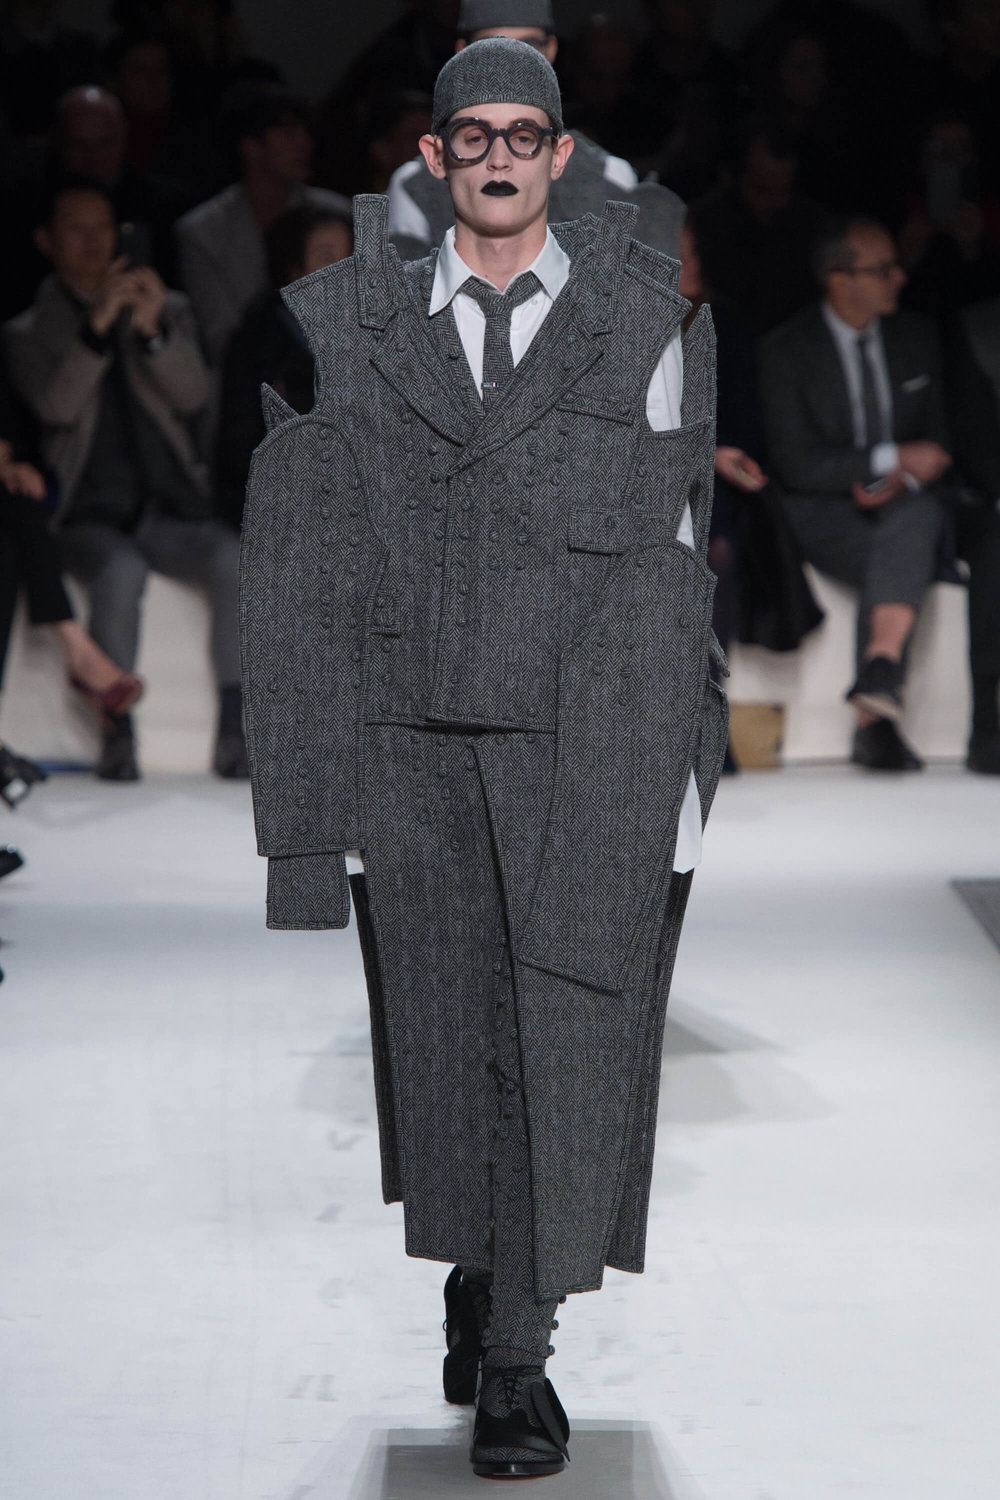 Thom-Browne-Never-Fails-to-Amaze-Thatsitmag-Thatsitmagazine-GraceBrookes-Paris-Fashion-week8.jpg